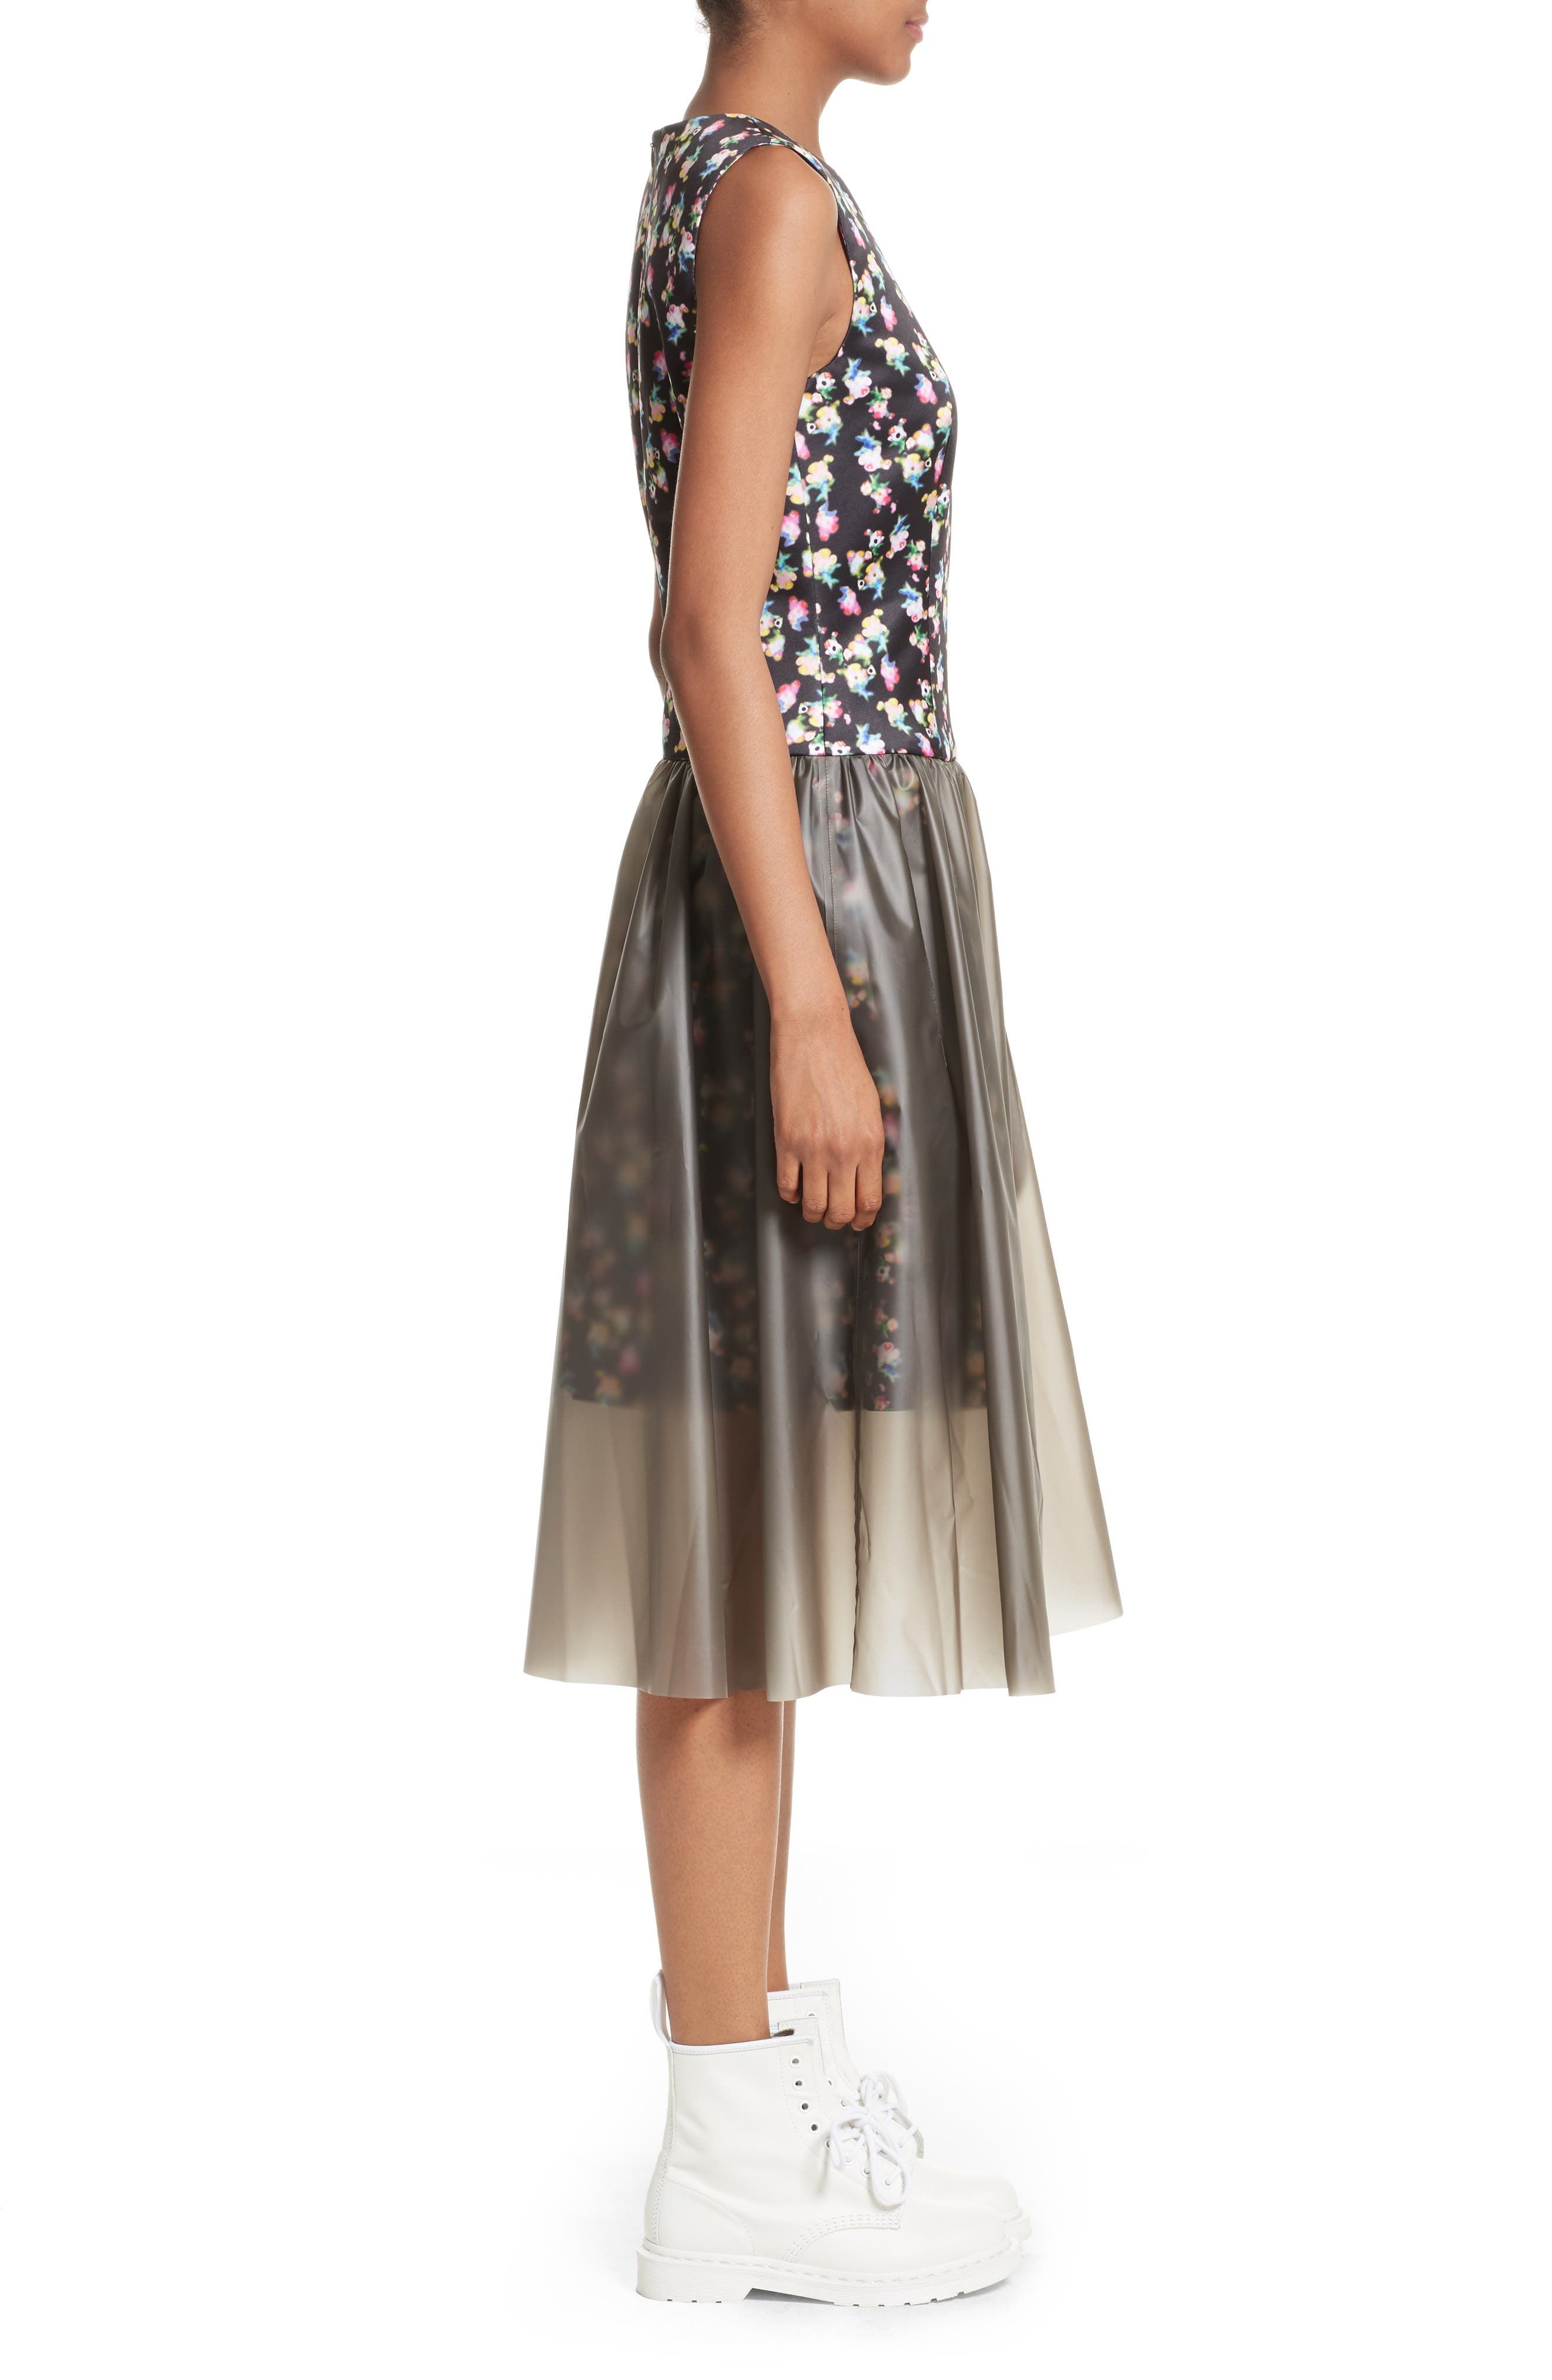 Floral Print Fit & Flare Dress with Vinyl Skirt,                             Alternate thumbnail 3, color,                             001